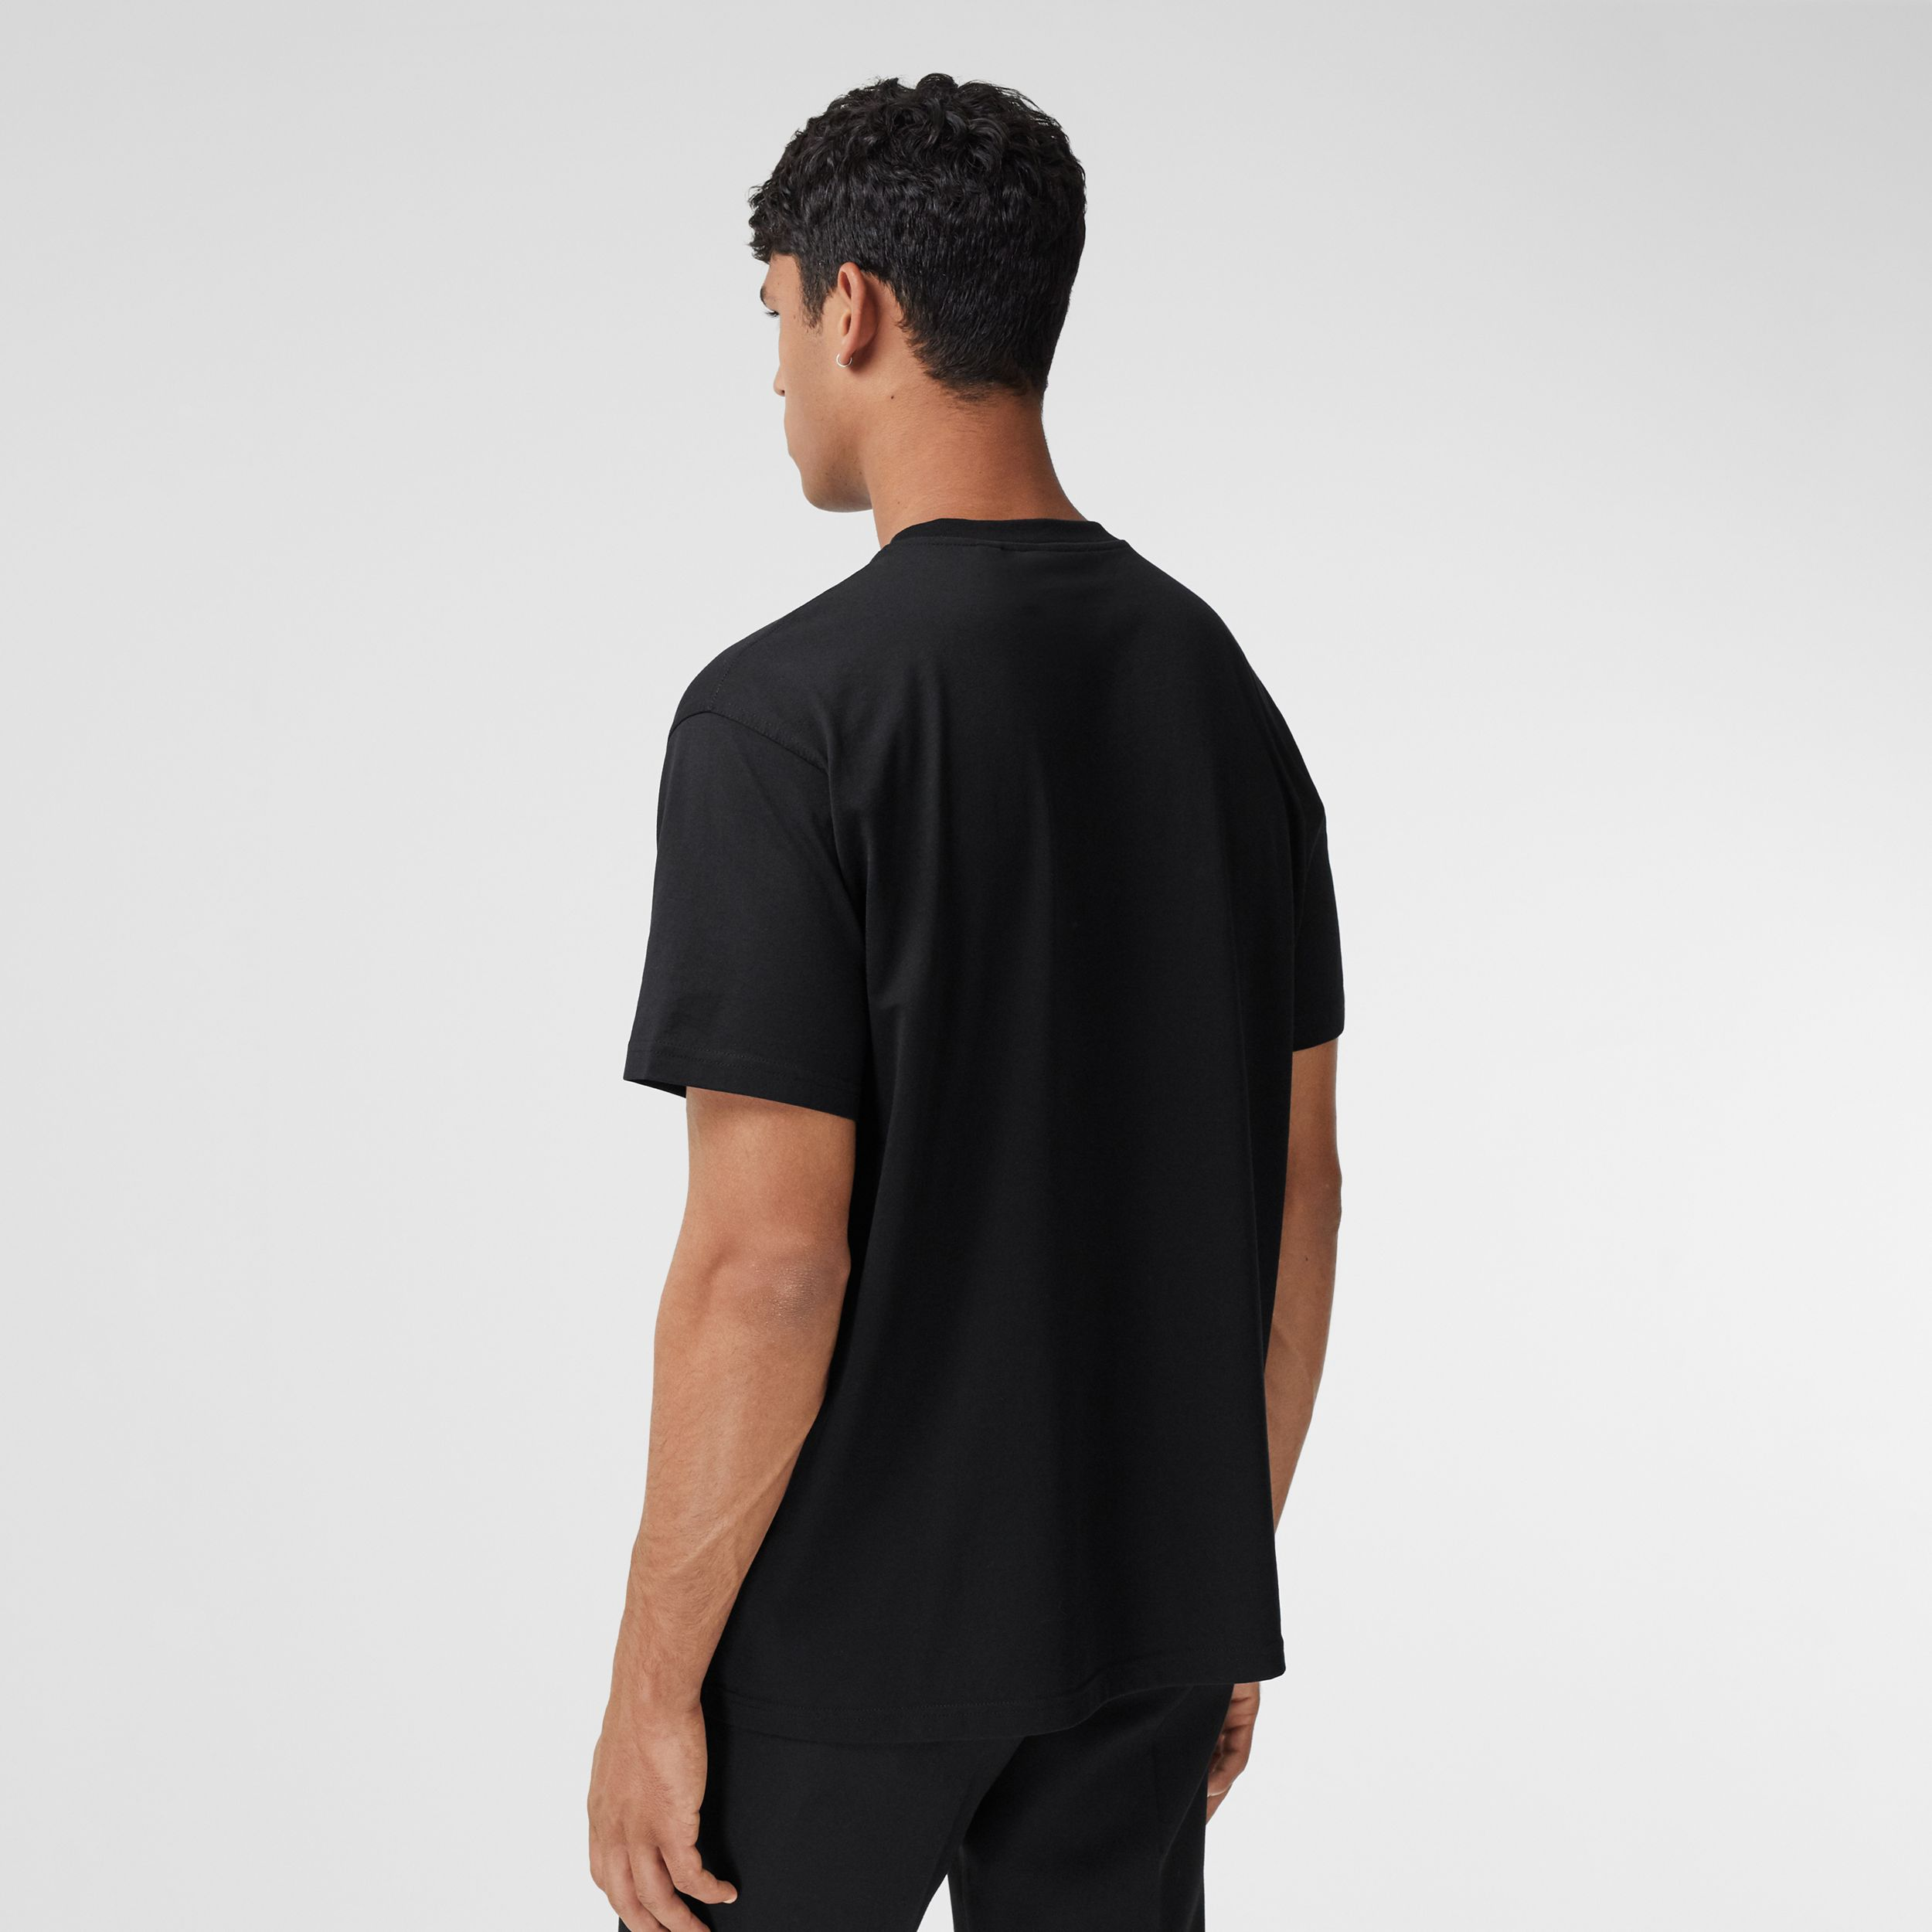 Logo Print Cotton T-shirt in Black | Burberry - 3